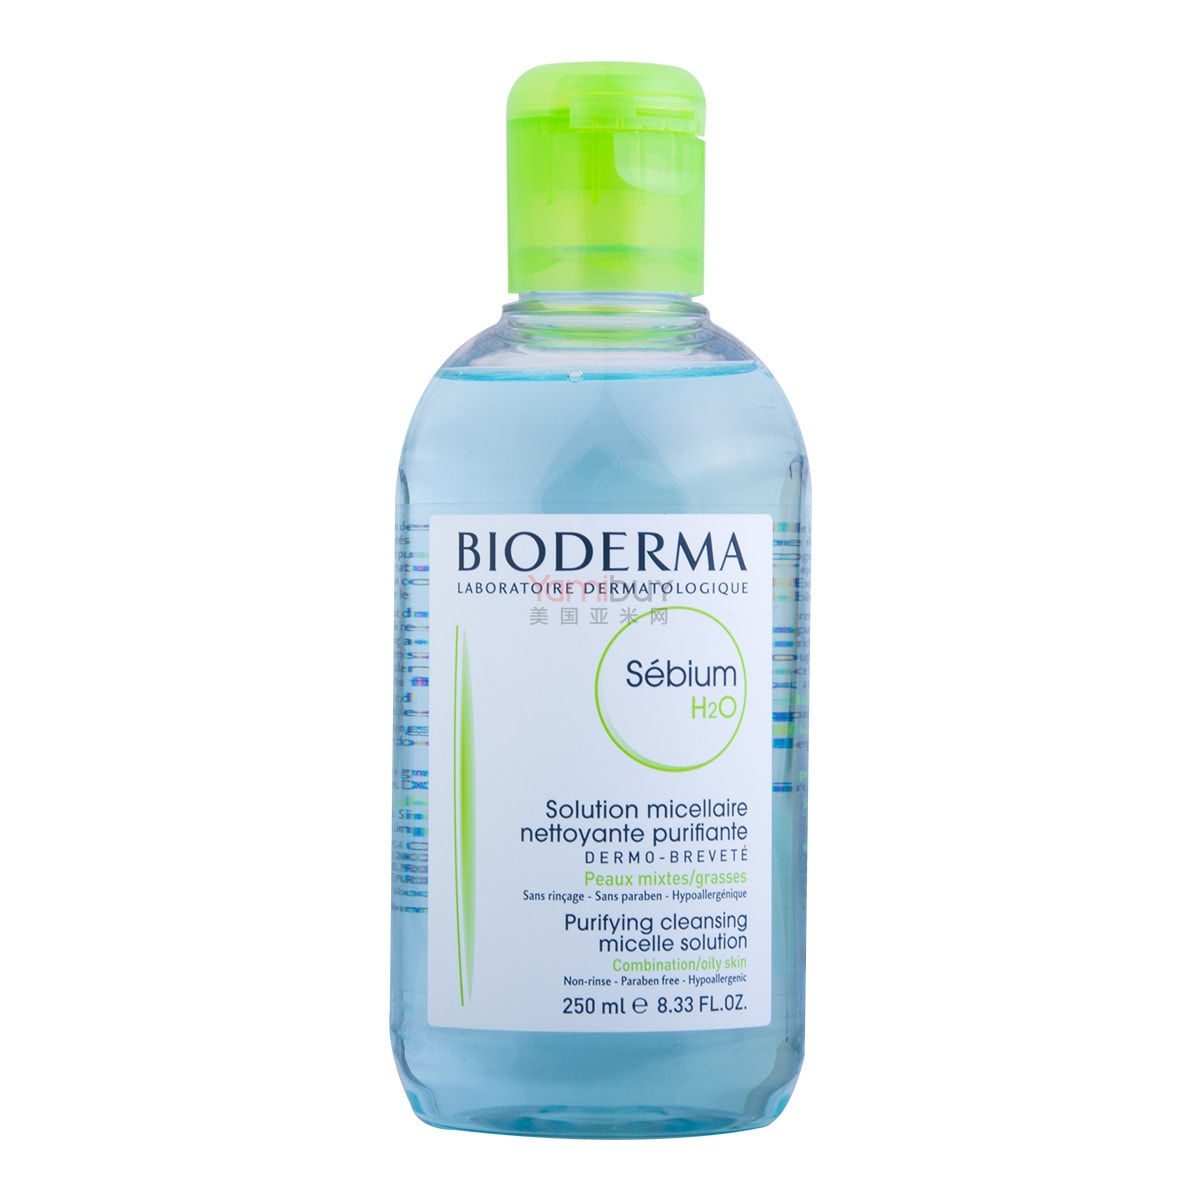 BIODERMA SEBIUM H2O Purifying Cleansing Micelle Solution 250ml